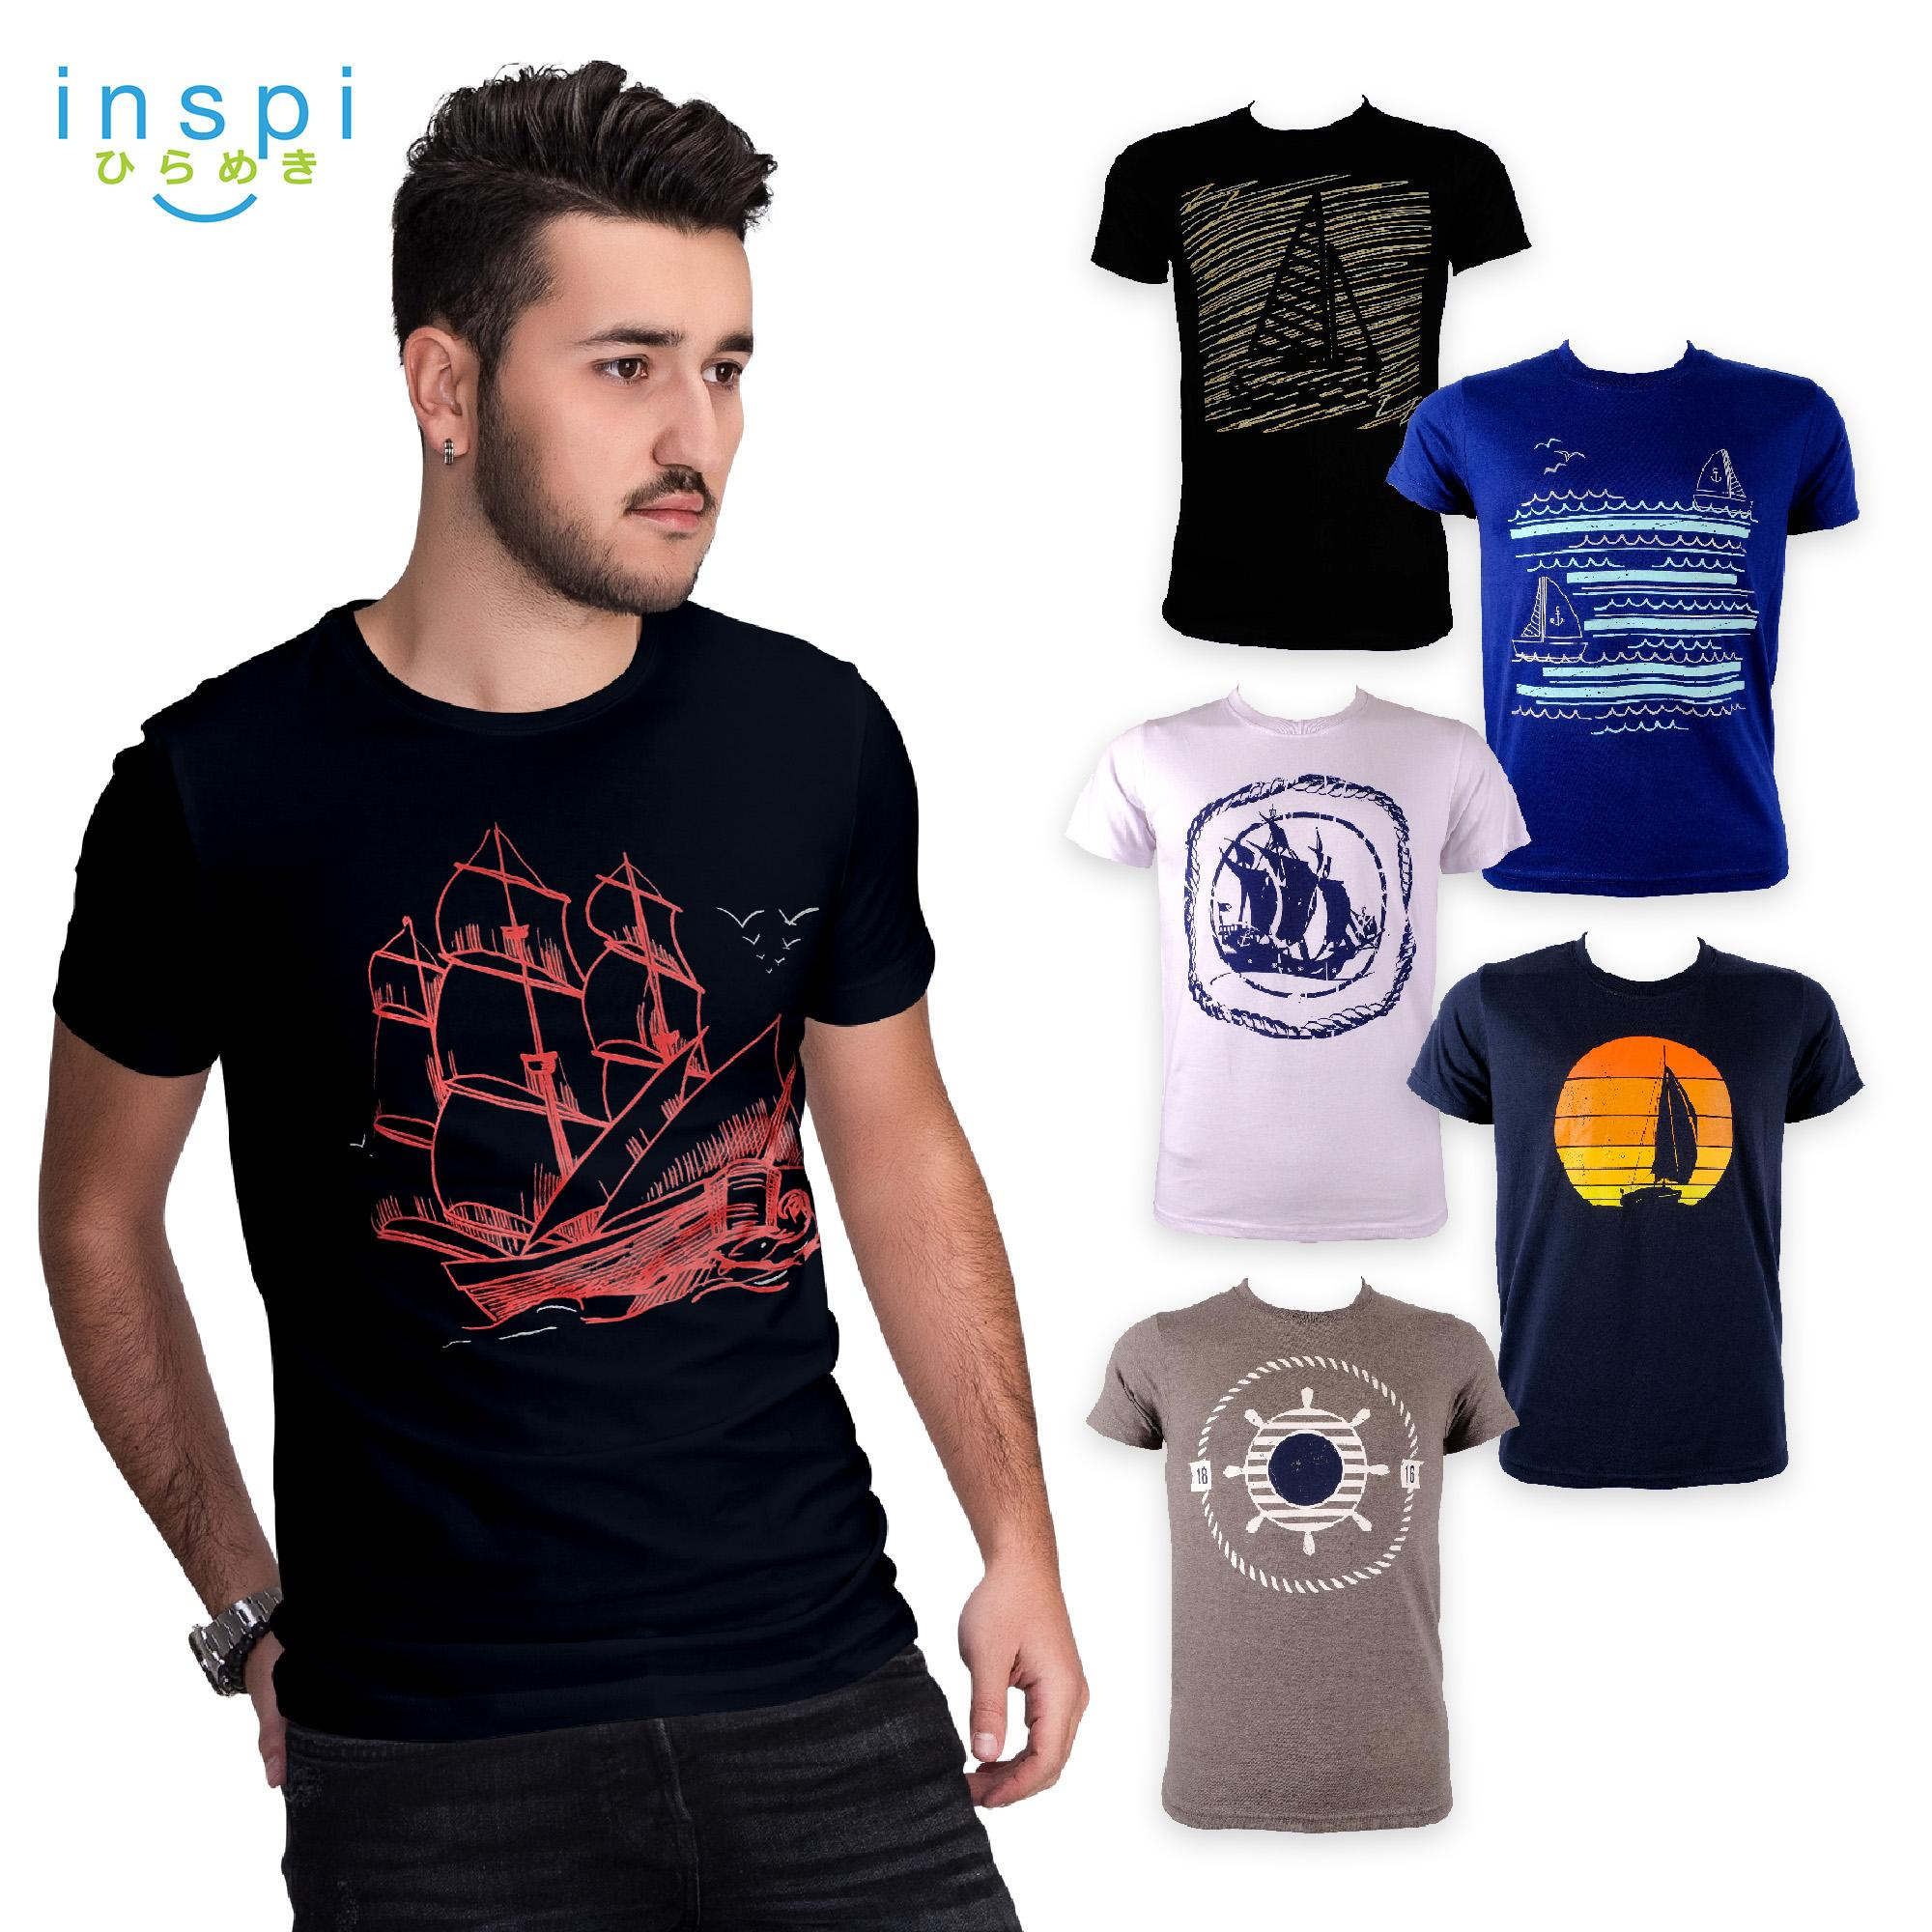 49caf8f3 INSPI Tees Sailing Collection tshirt printed graphic tee Mens t shirt shirts  for men tshirts sale